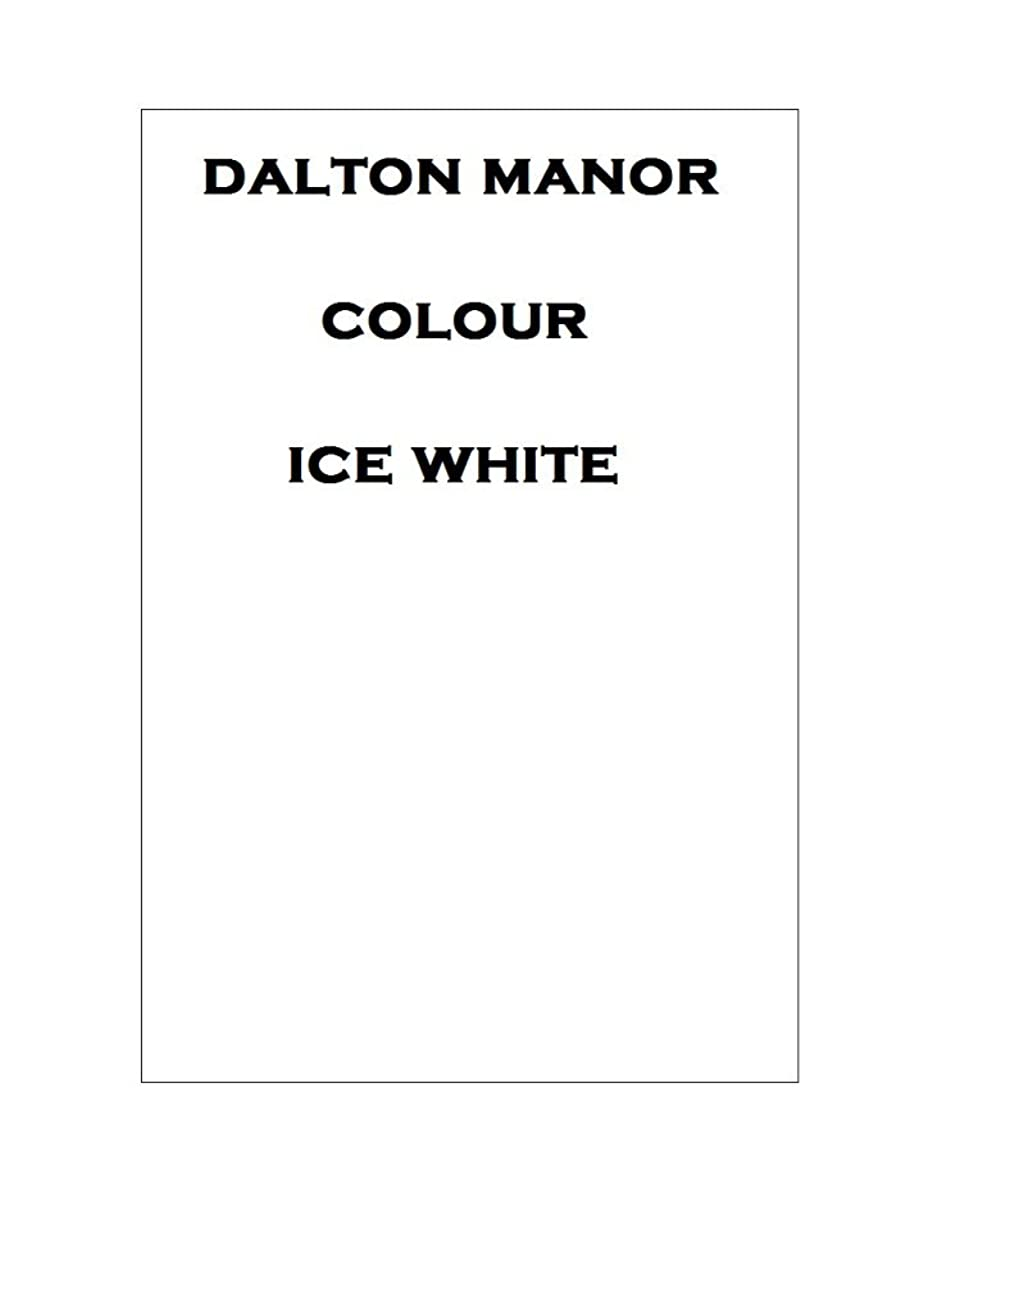 Dalton Manor A4 Coloured Card 250 Sheet Pack 160gm Supplied in a Weston Clear Craft Storage Box - White 160gm